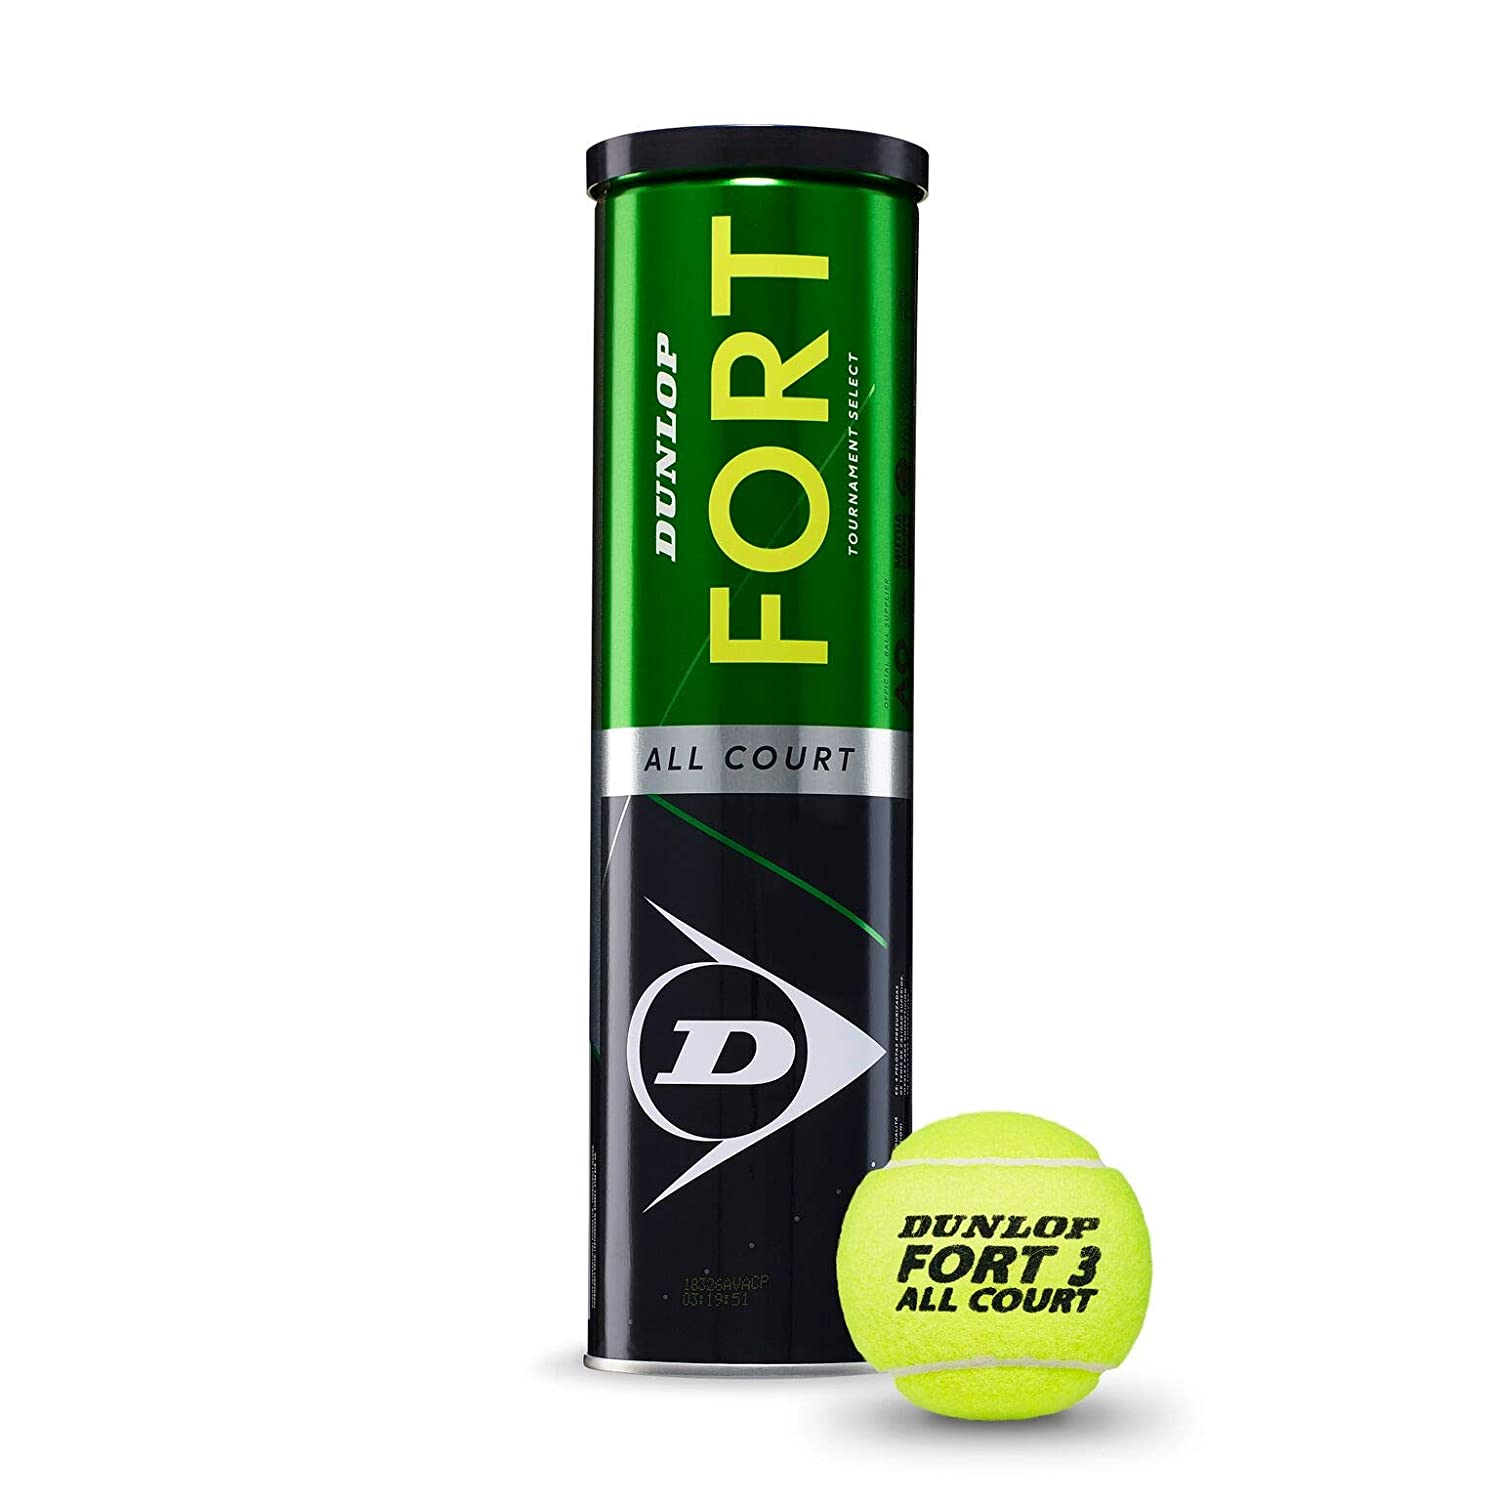 DUNLOP Fort All Court TS Pelotas Tenis, Adultos Unisex, Amarillo